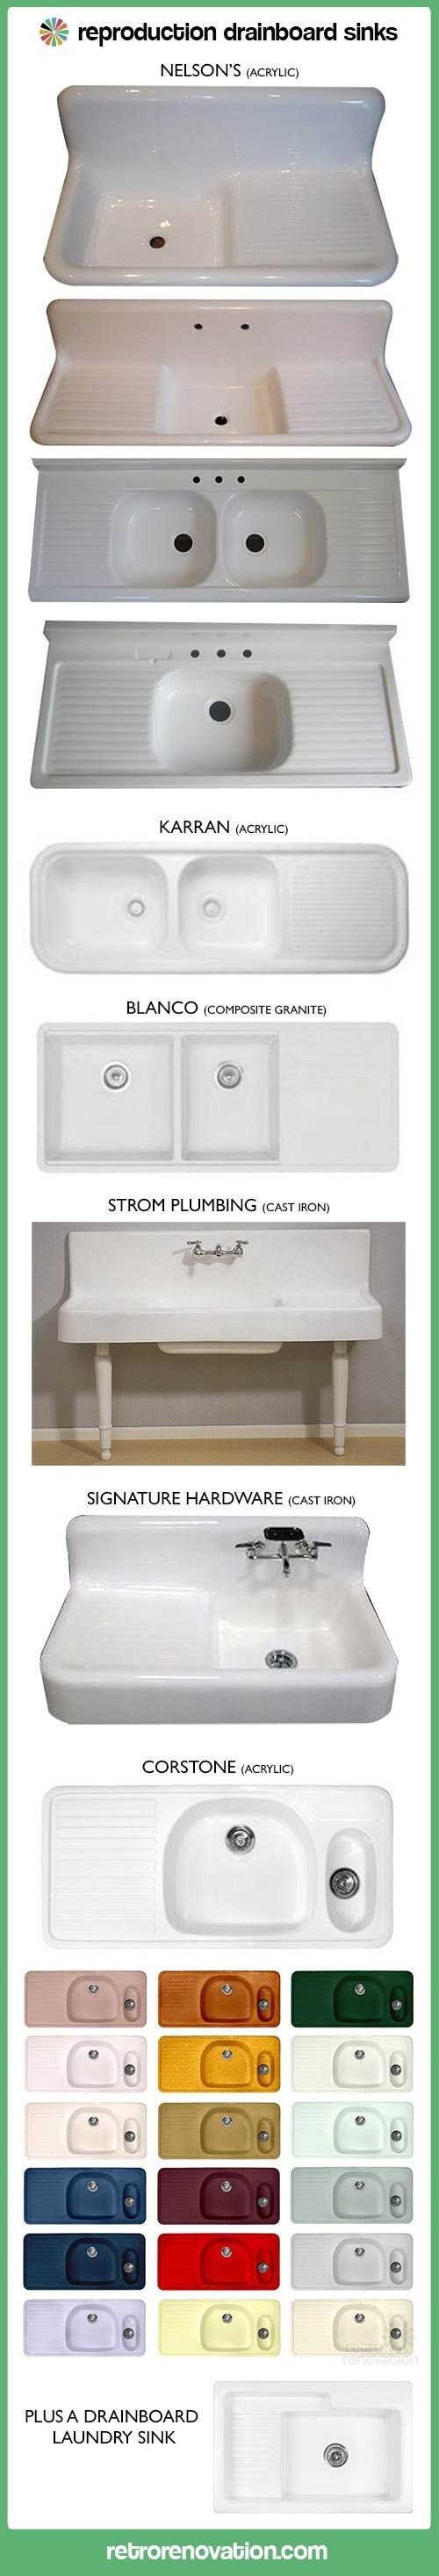 Five new options for farmhouse kitchen drainboard sinks - including ...